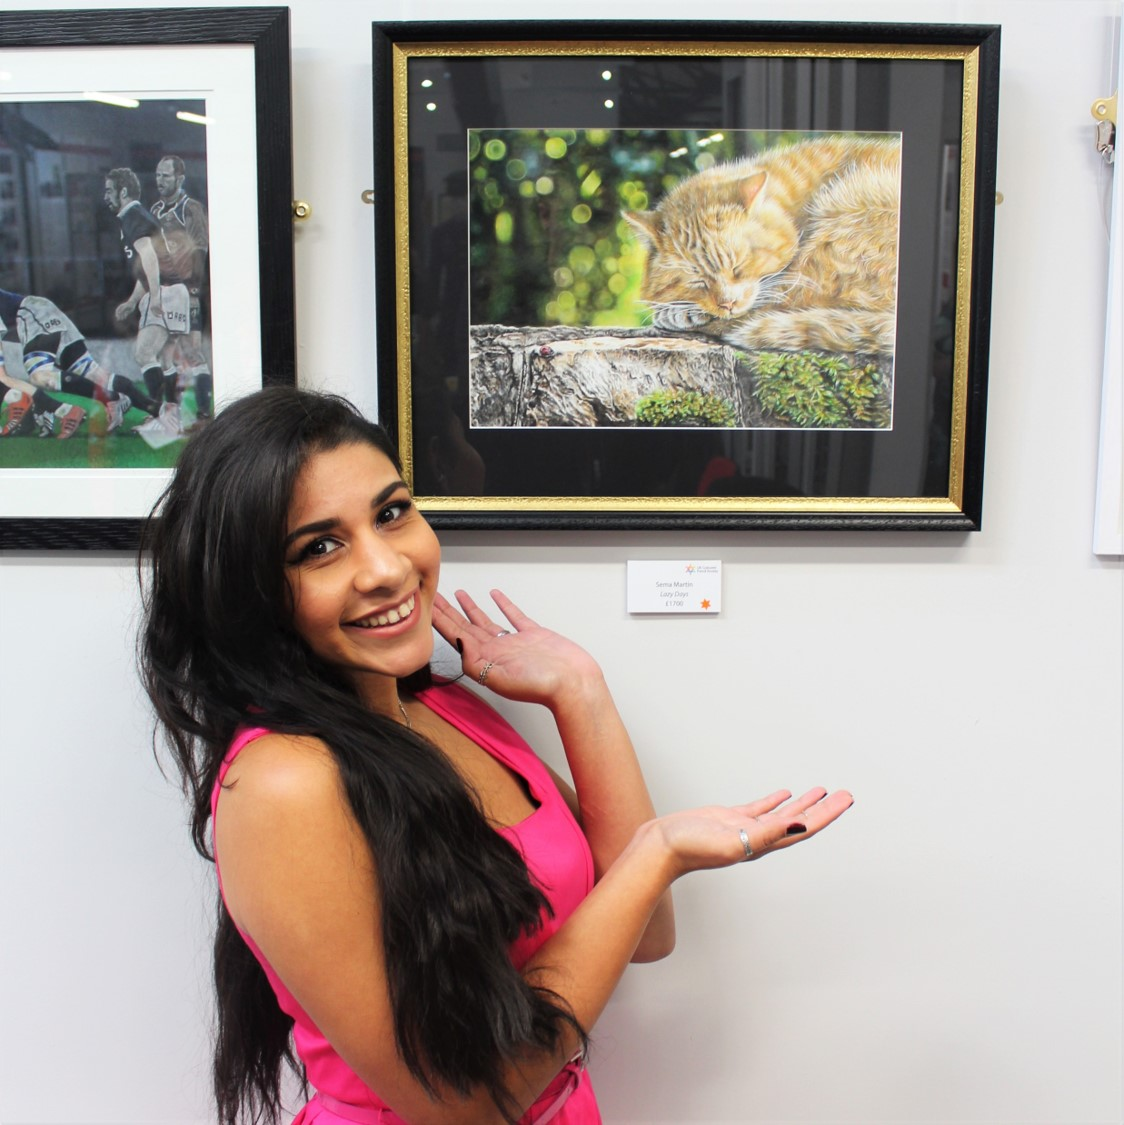 UKCPS 2019 World of Colour Pencil Exhibition at the Derwent Pencil Museum - My drawing Lazy Days was chosen to exhibit at the Derwent Pencil Museum in Keswick. Click on the button below to read more about this event in my blog post.